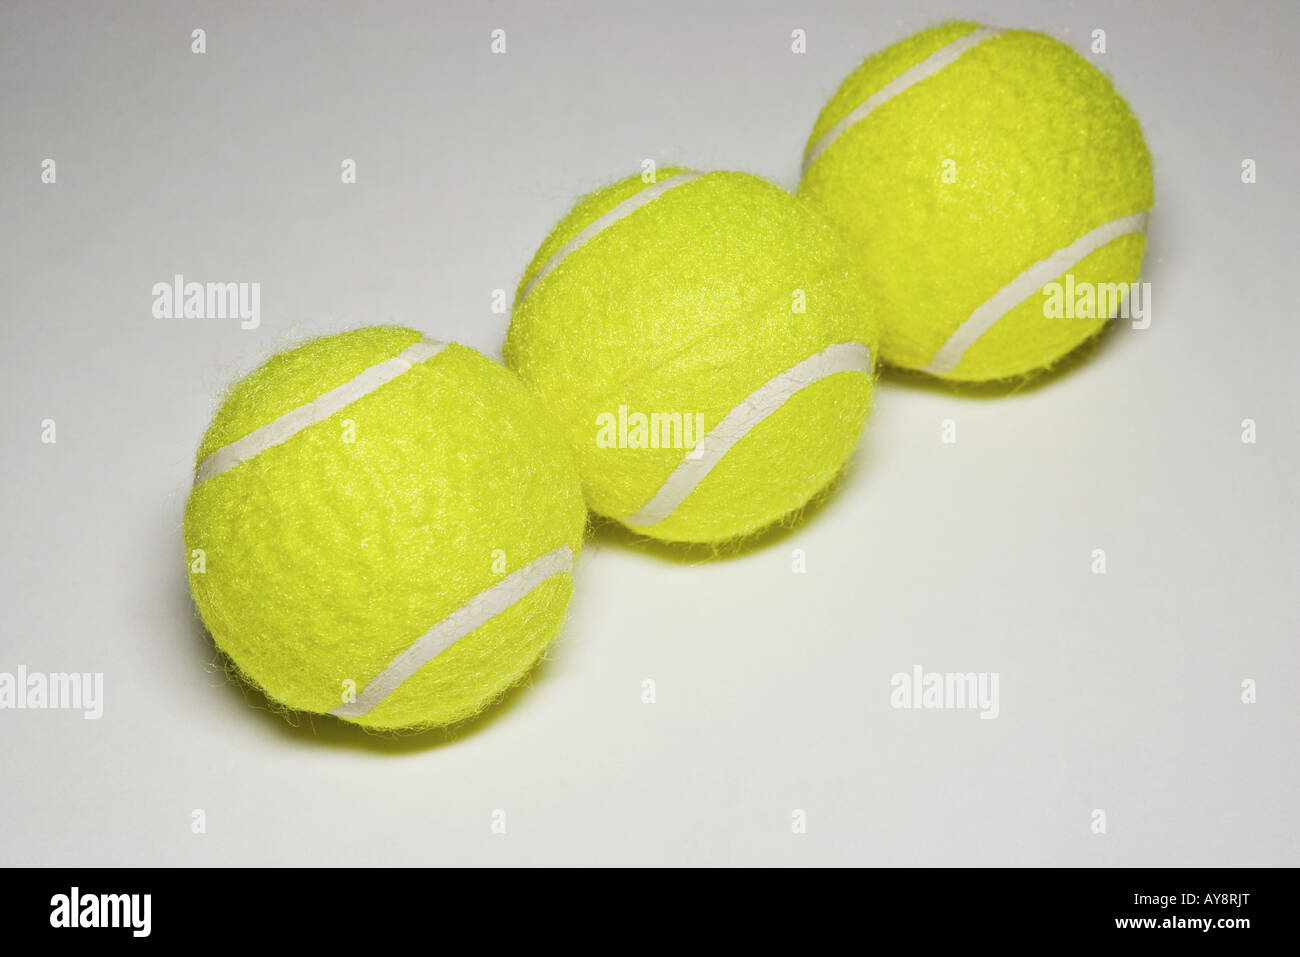 Three tennis balls in a row, close-up - Stock Image